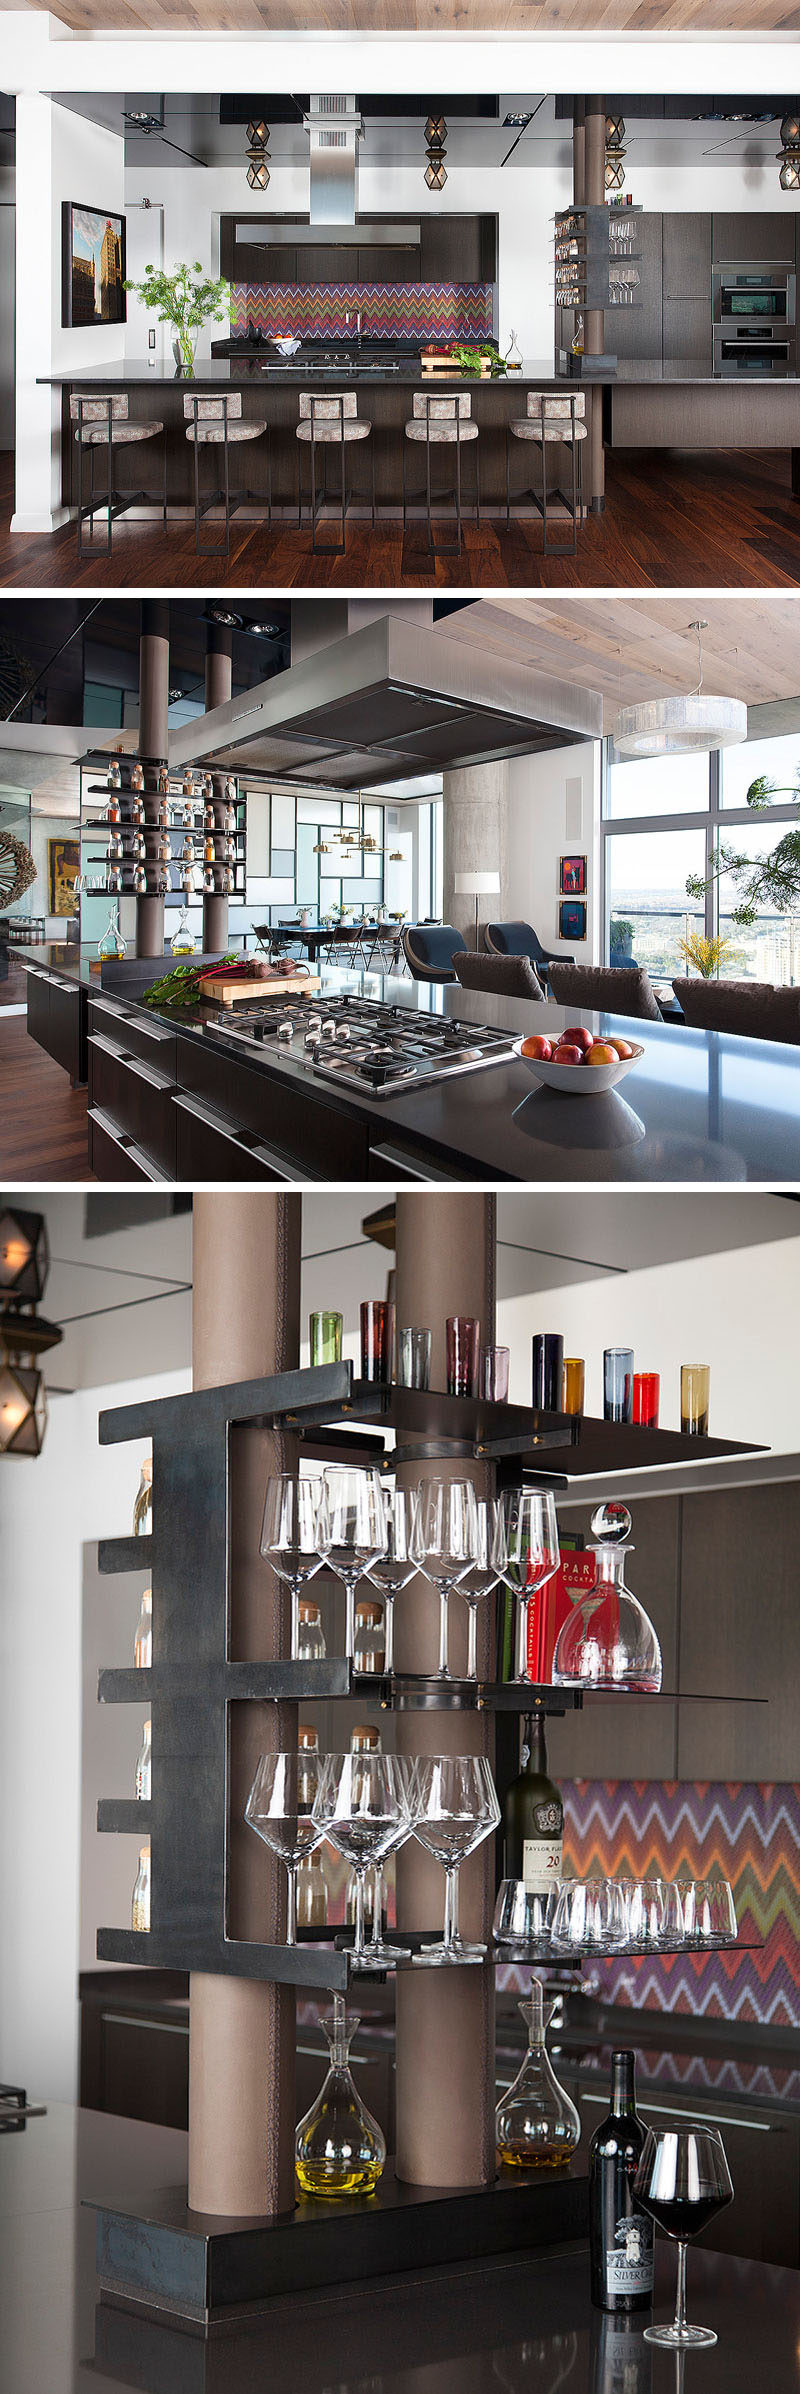 In this modern kitchen, a bright backsplash adds a touch of color, while exposed drainpipes have been wrapped in leather and are a on display as part of some open shelving. #KitchenDesign #InteriorDesign #OpenShelving